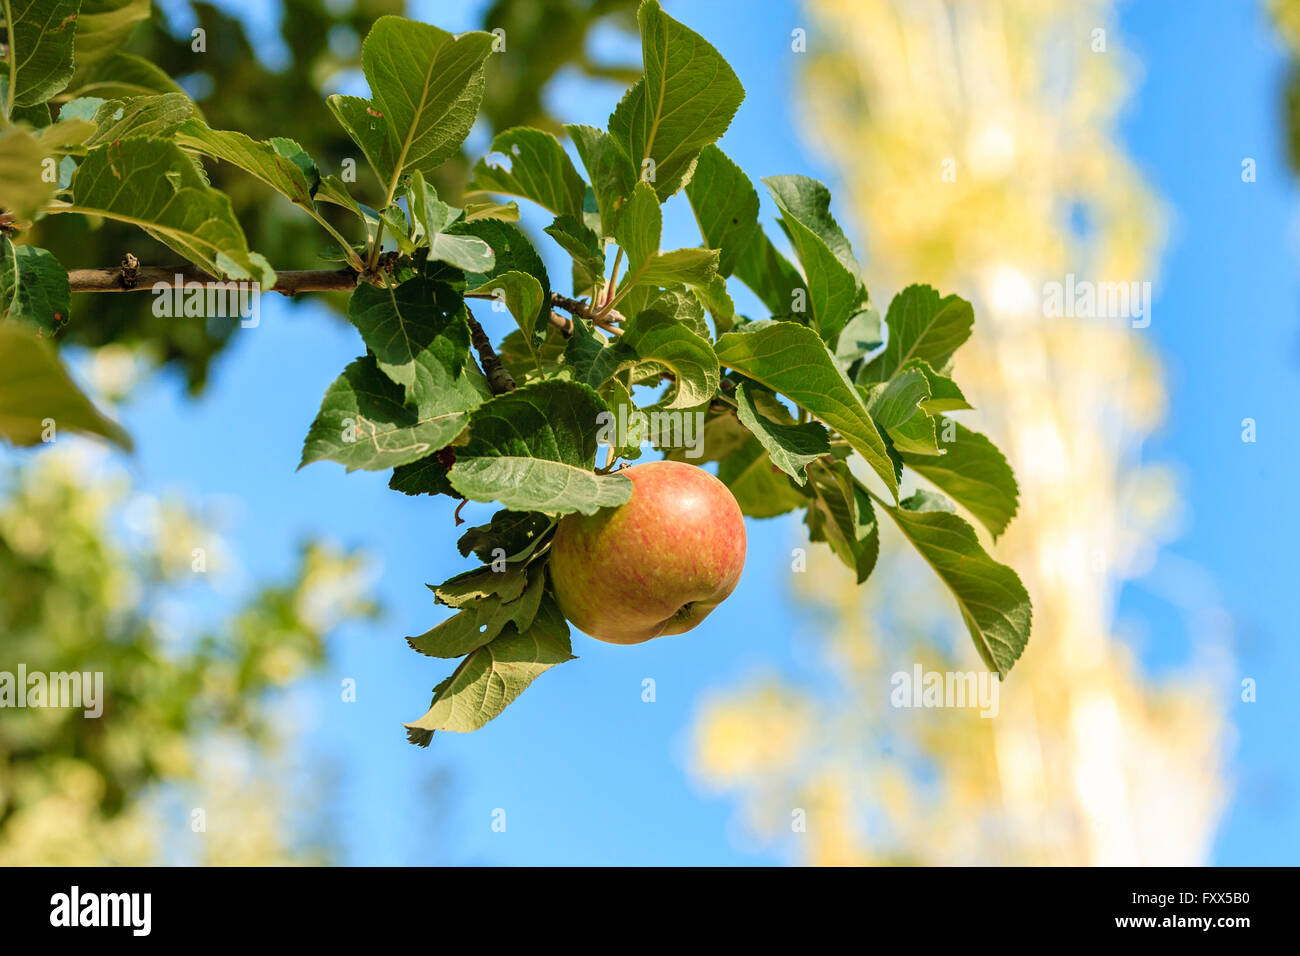 Apple in India - Stock Image